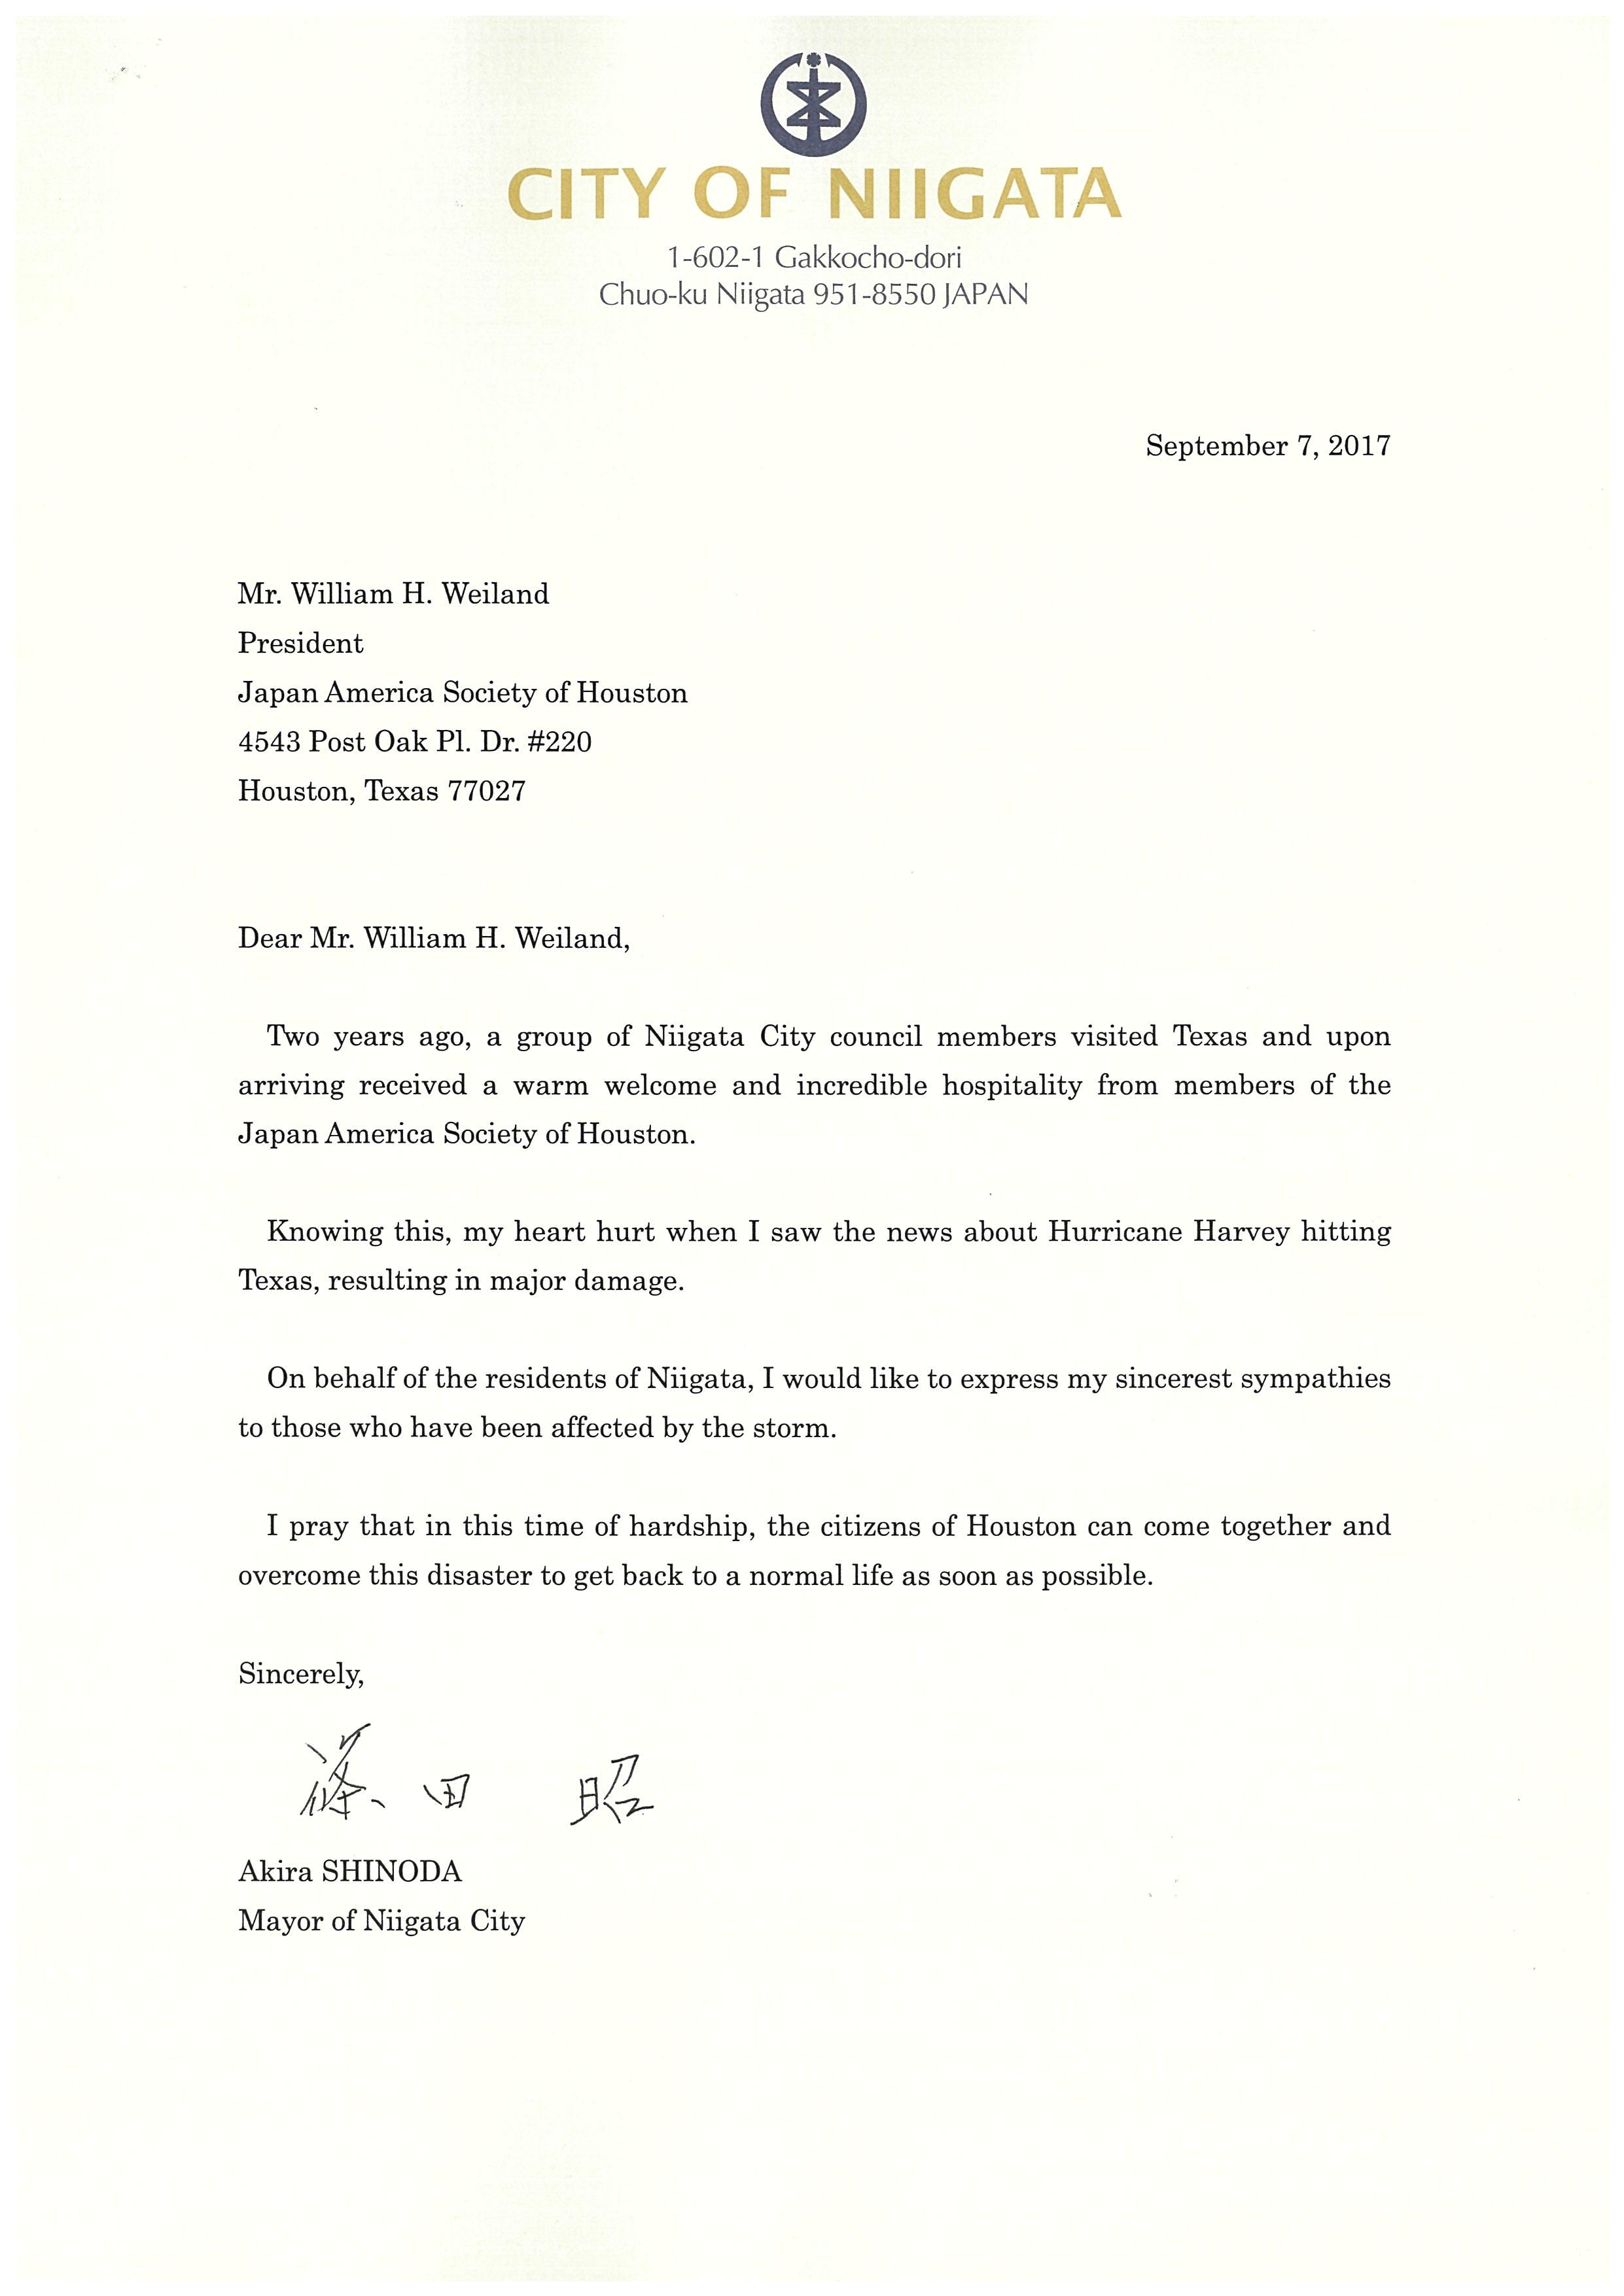 Letter for Japan America Society of Houston, Mr.Weiland-page-001.jpg